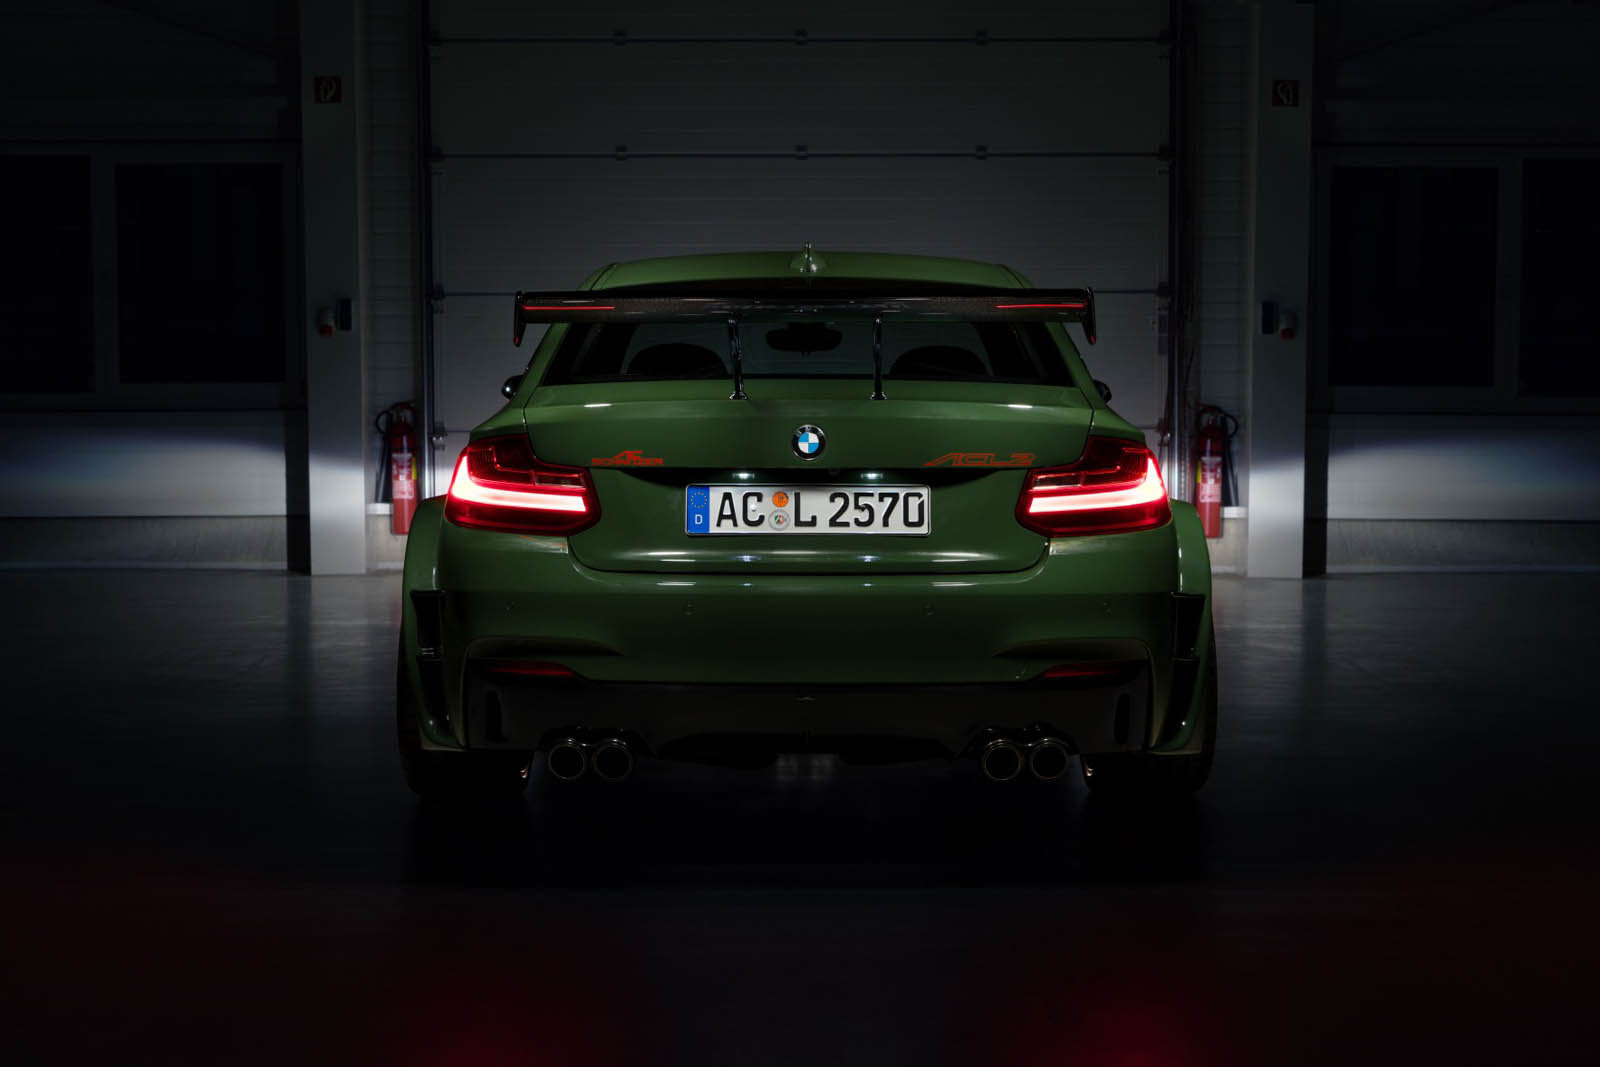 AC Schnitzer ACL2 Heck frontal_72 copy